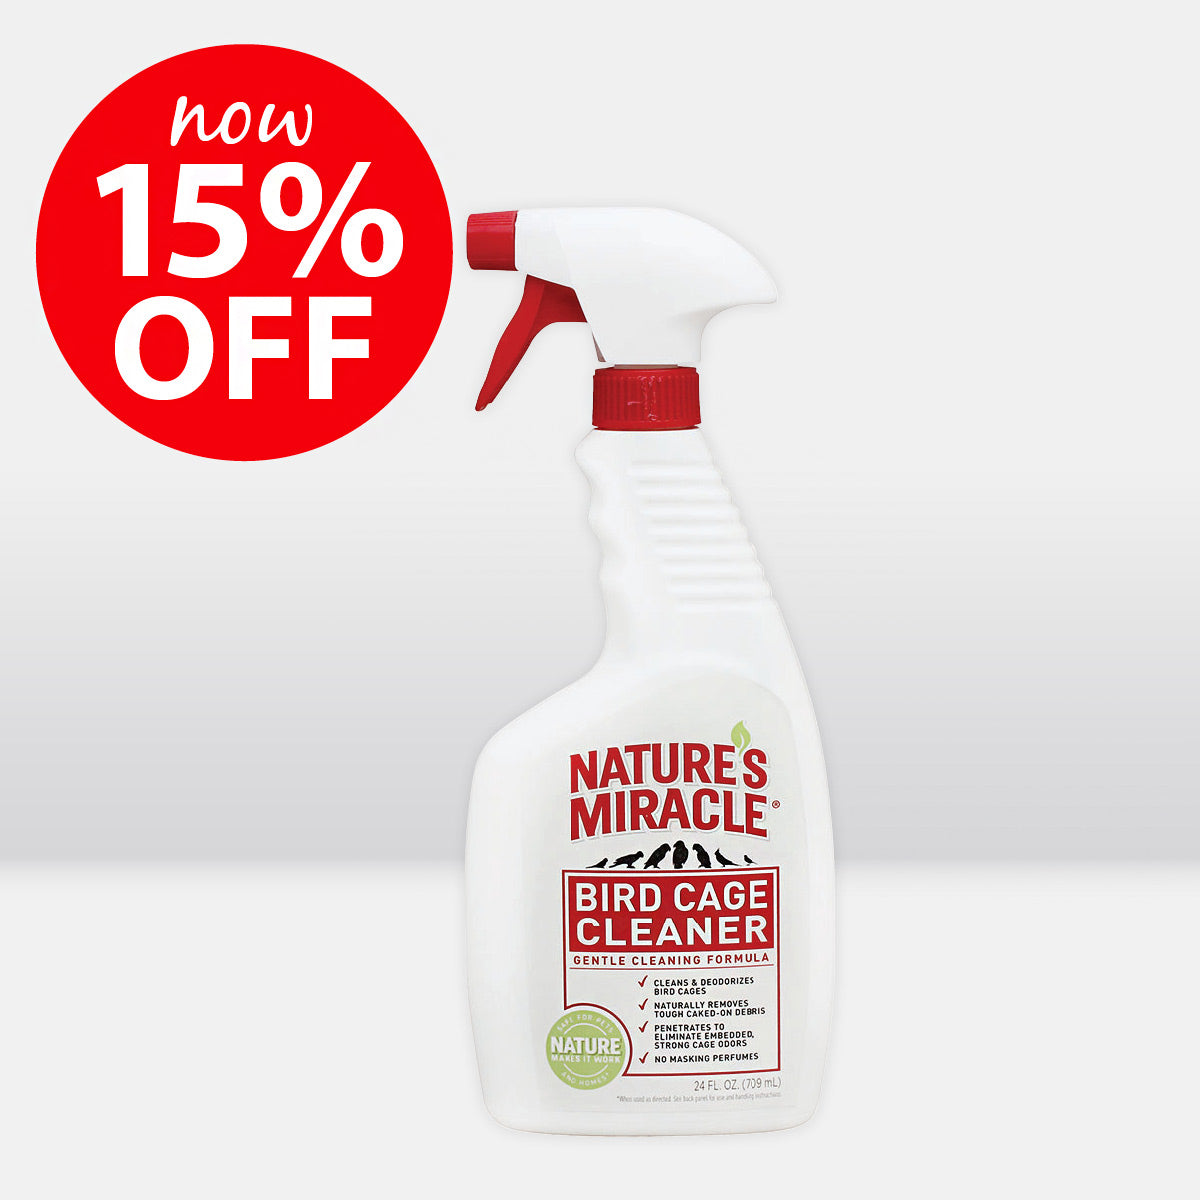 Nature's Miracle Bird Cage Cleaner ON SALE NOW